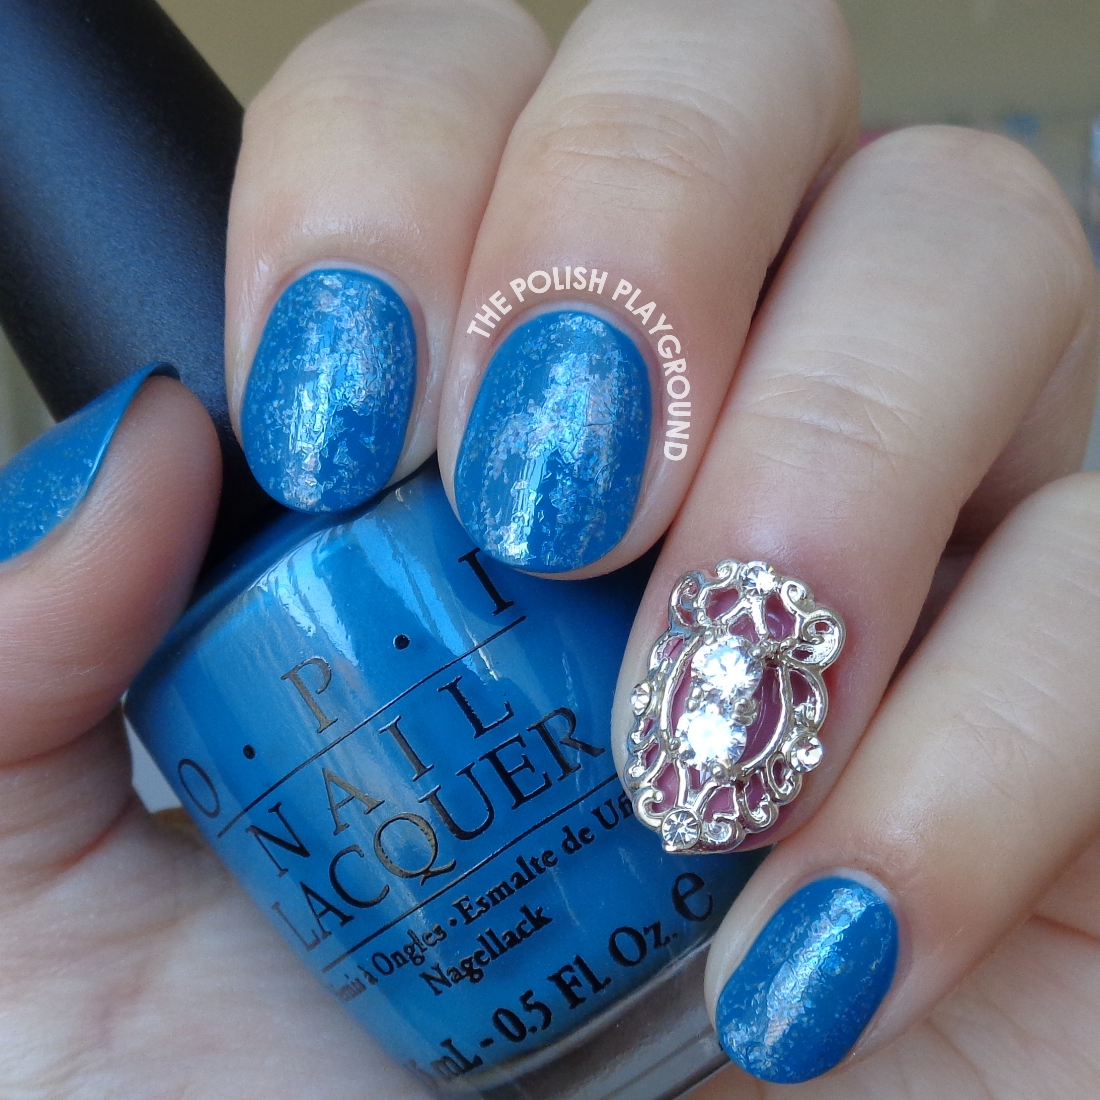 The Polish Playground: Blue With Holographic Nail Foil